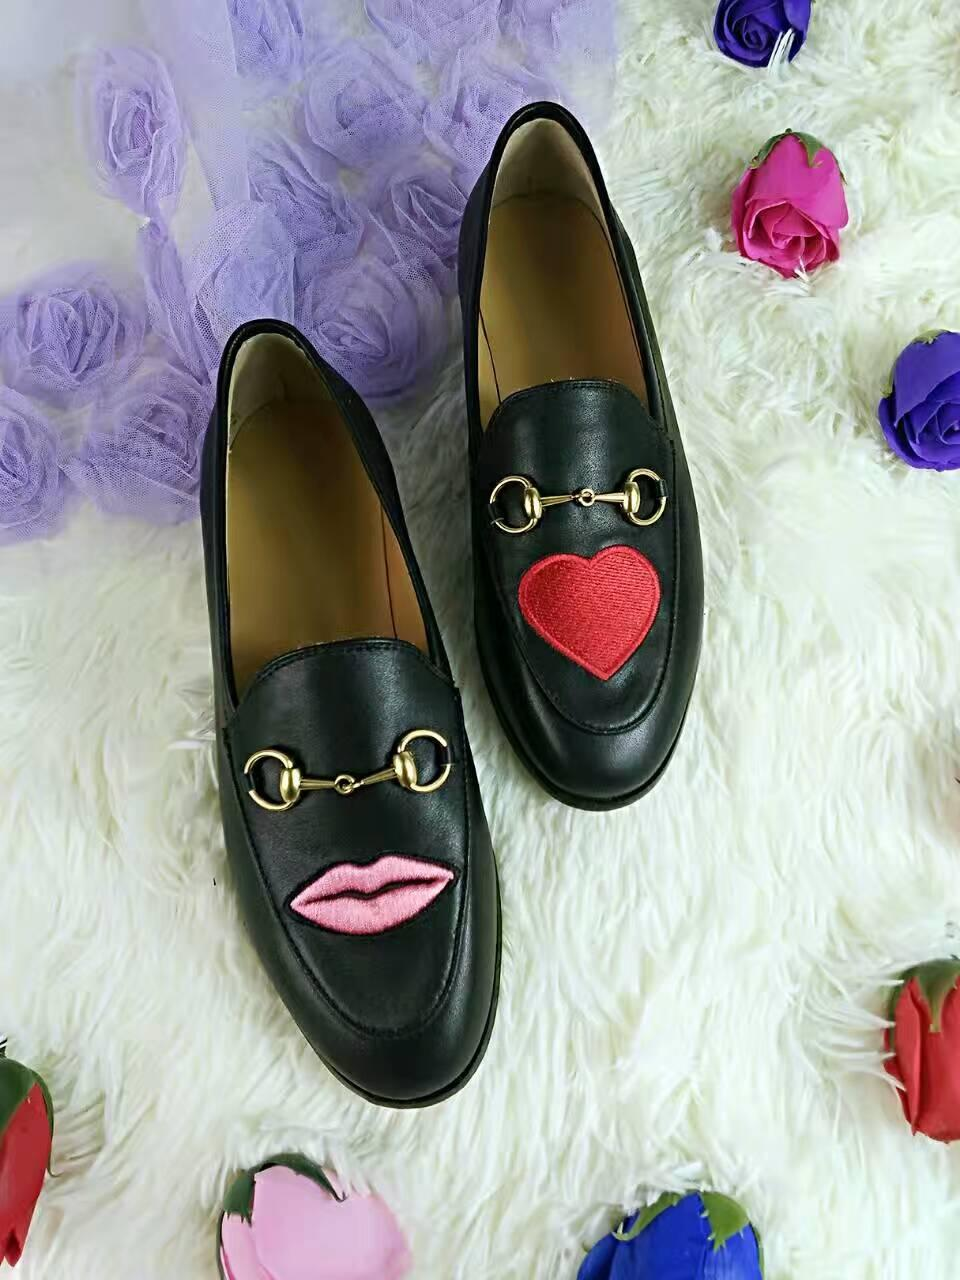 best version! u721 40 2 colors genuine leather embroidery flats loafer shoes flower snake heart lips black white g 2017 boyish stylish